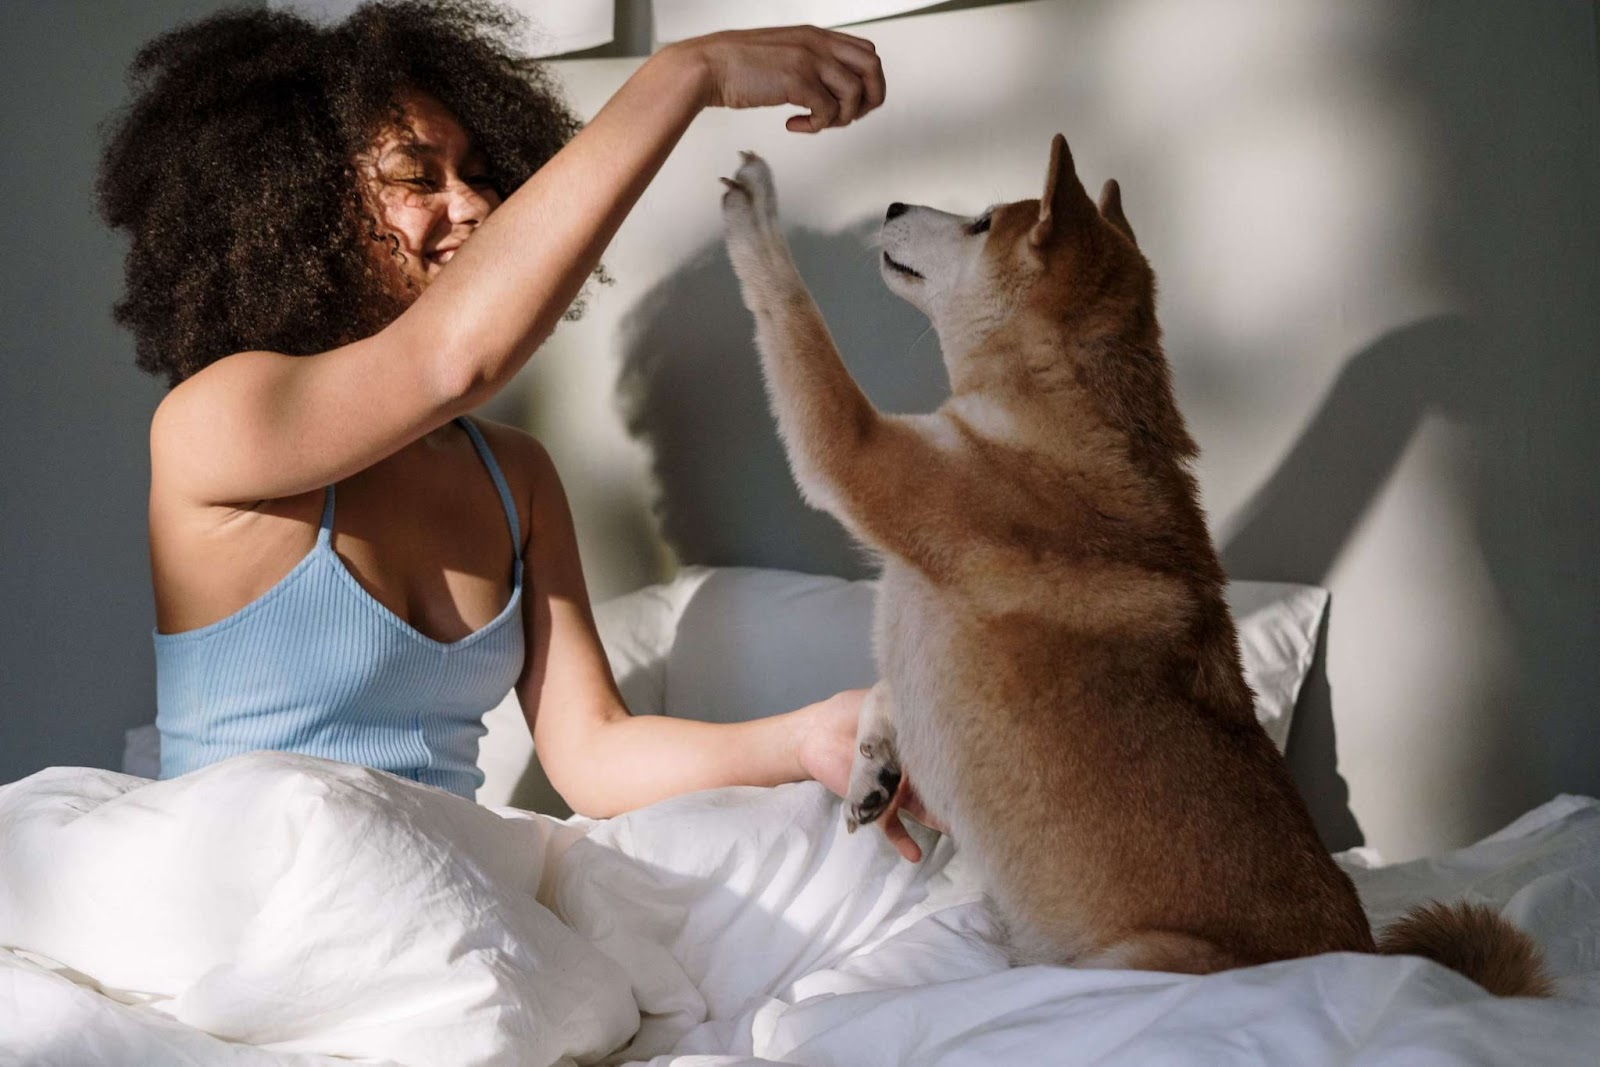 A woman and her dog playing in bed